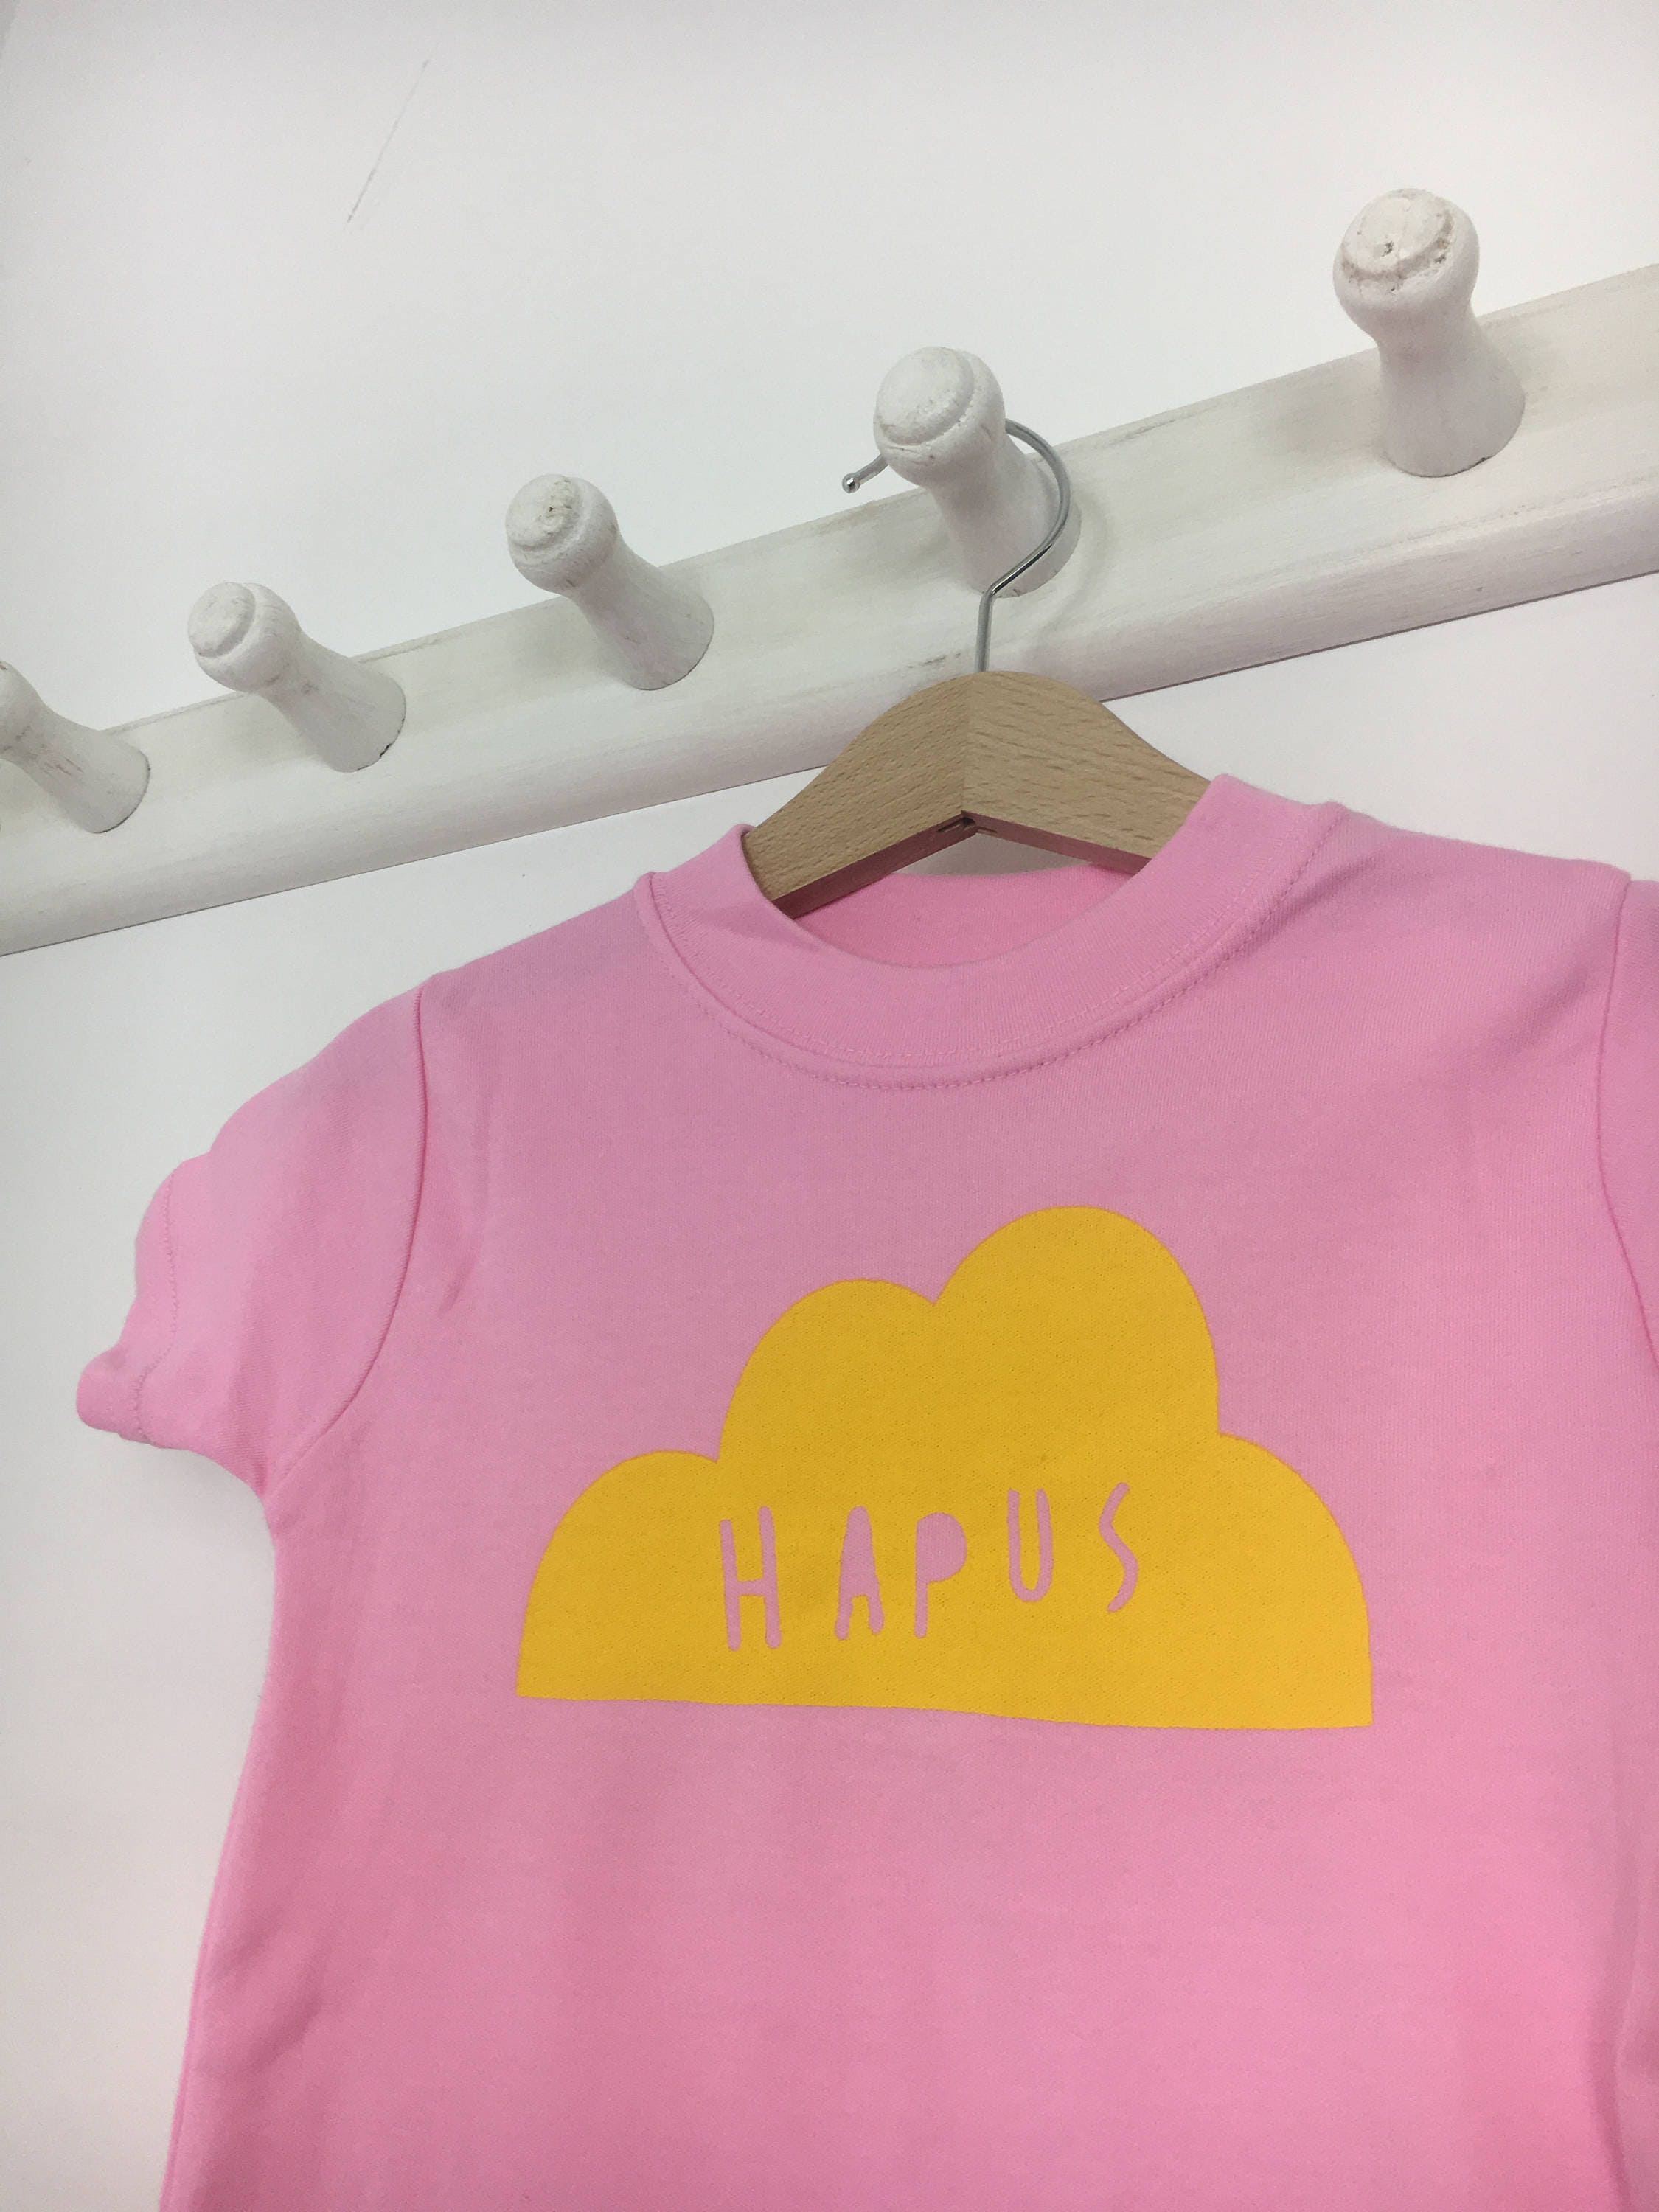 37f34325c SALE Baby Clothes Candy Floss Pink T-shirt Welsh Text Hapus ...